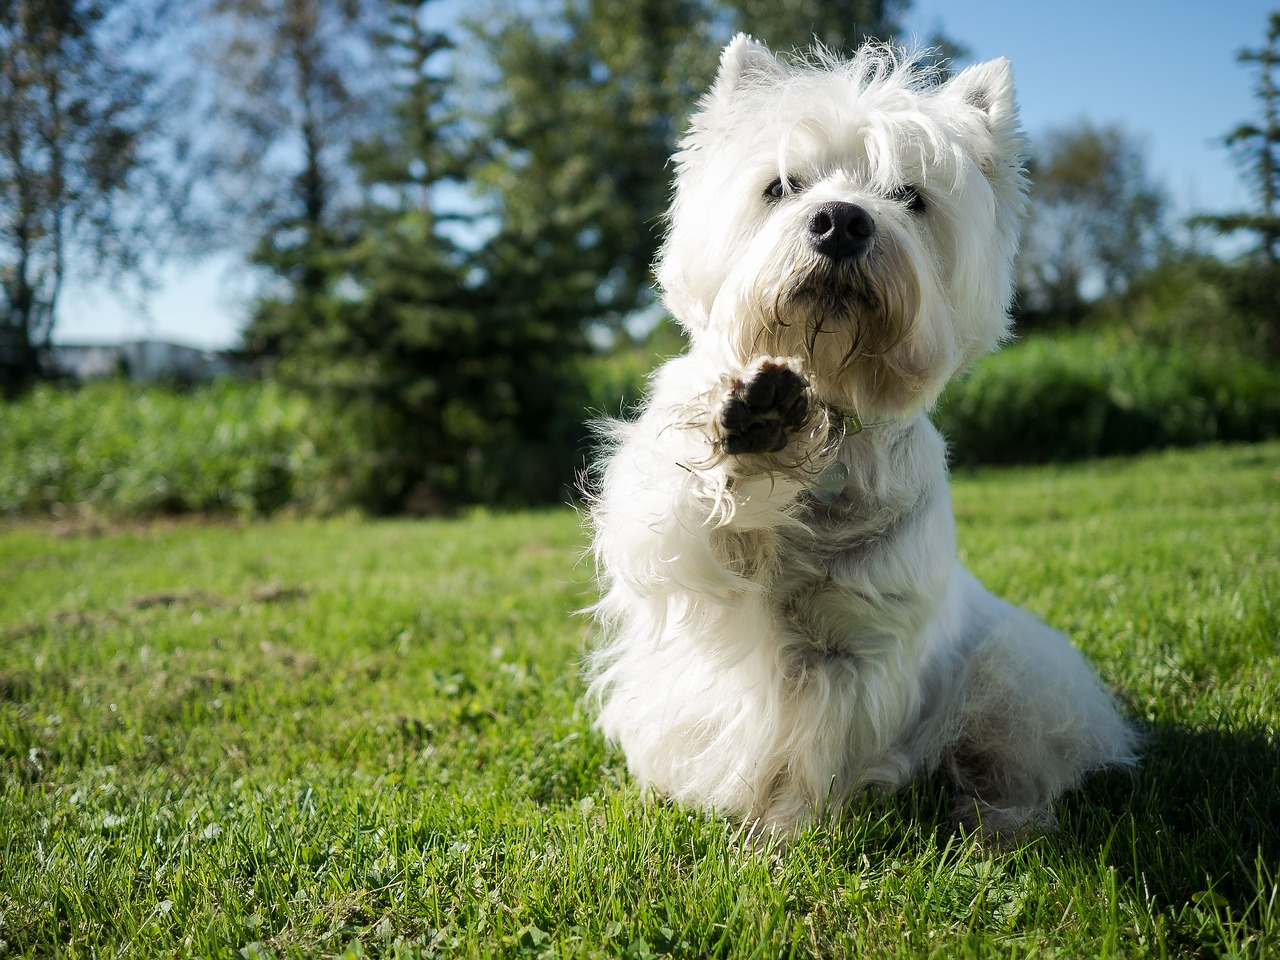 Proper Etiquette At The Dog Park: 5 Great Tips